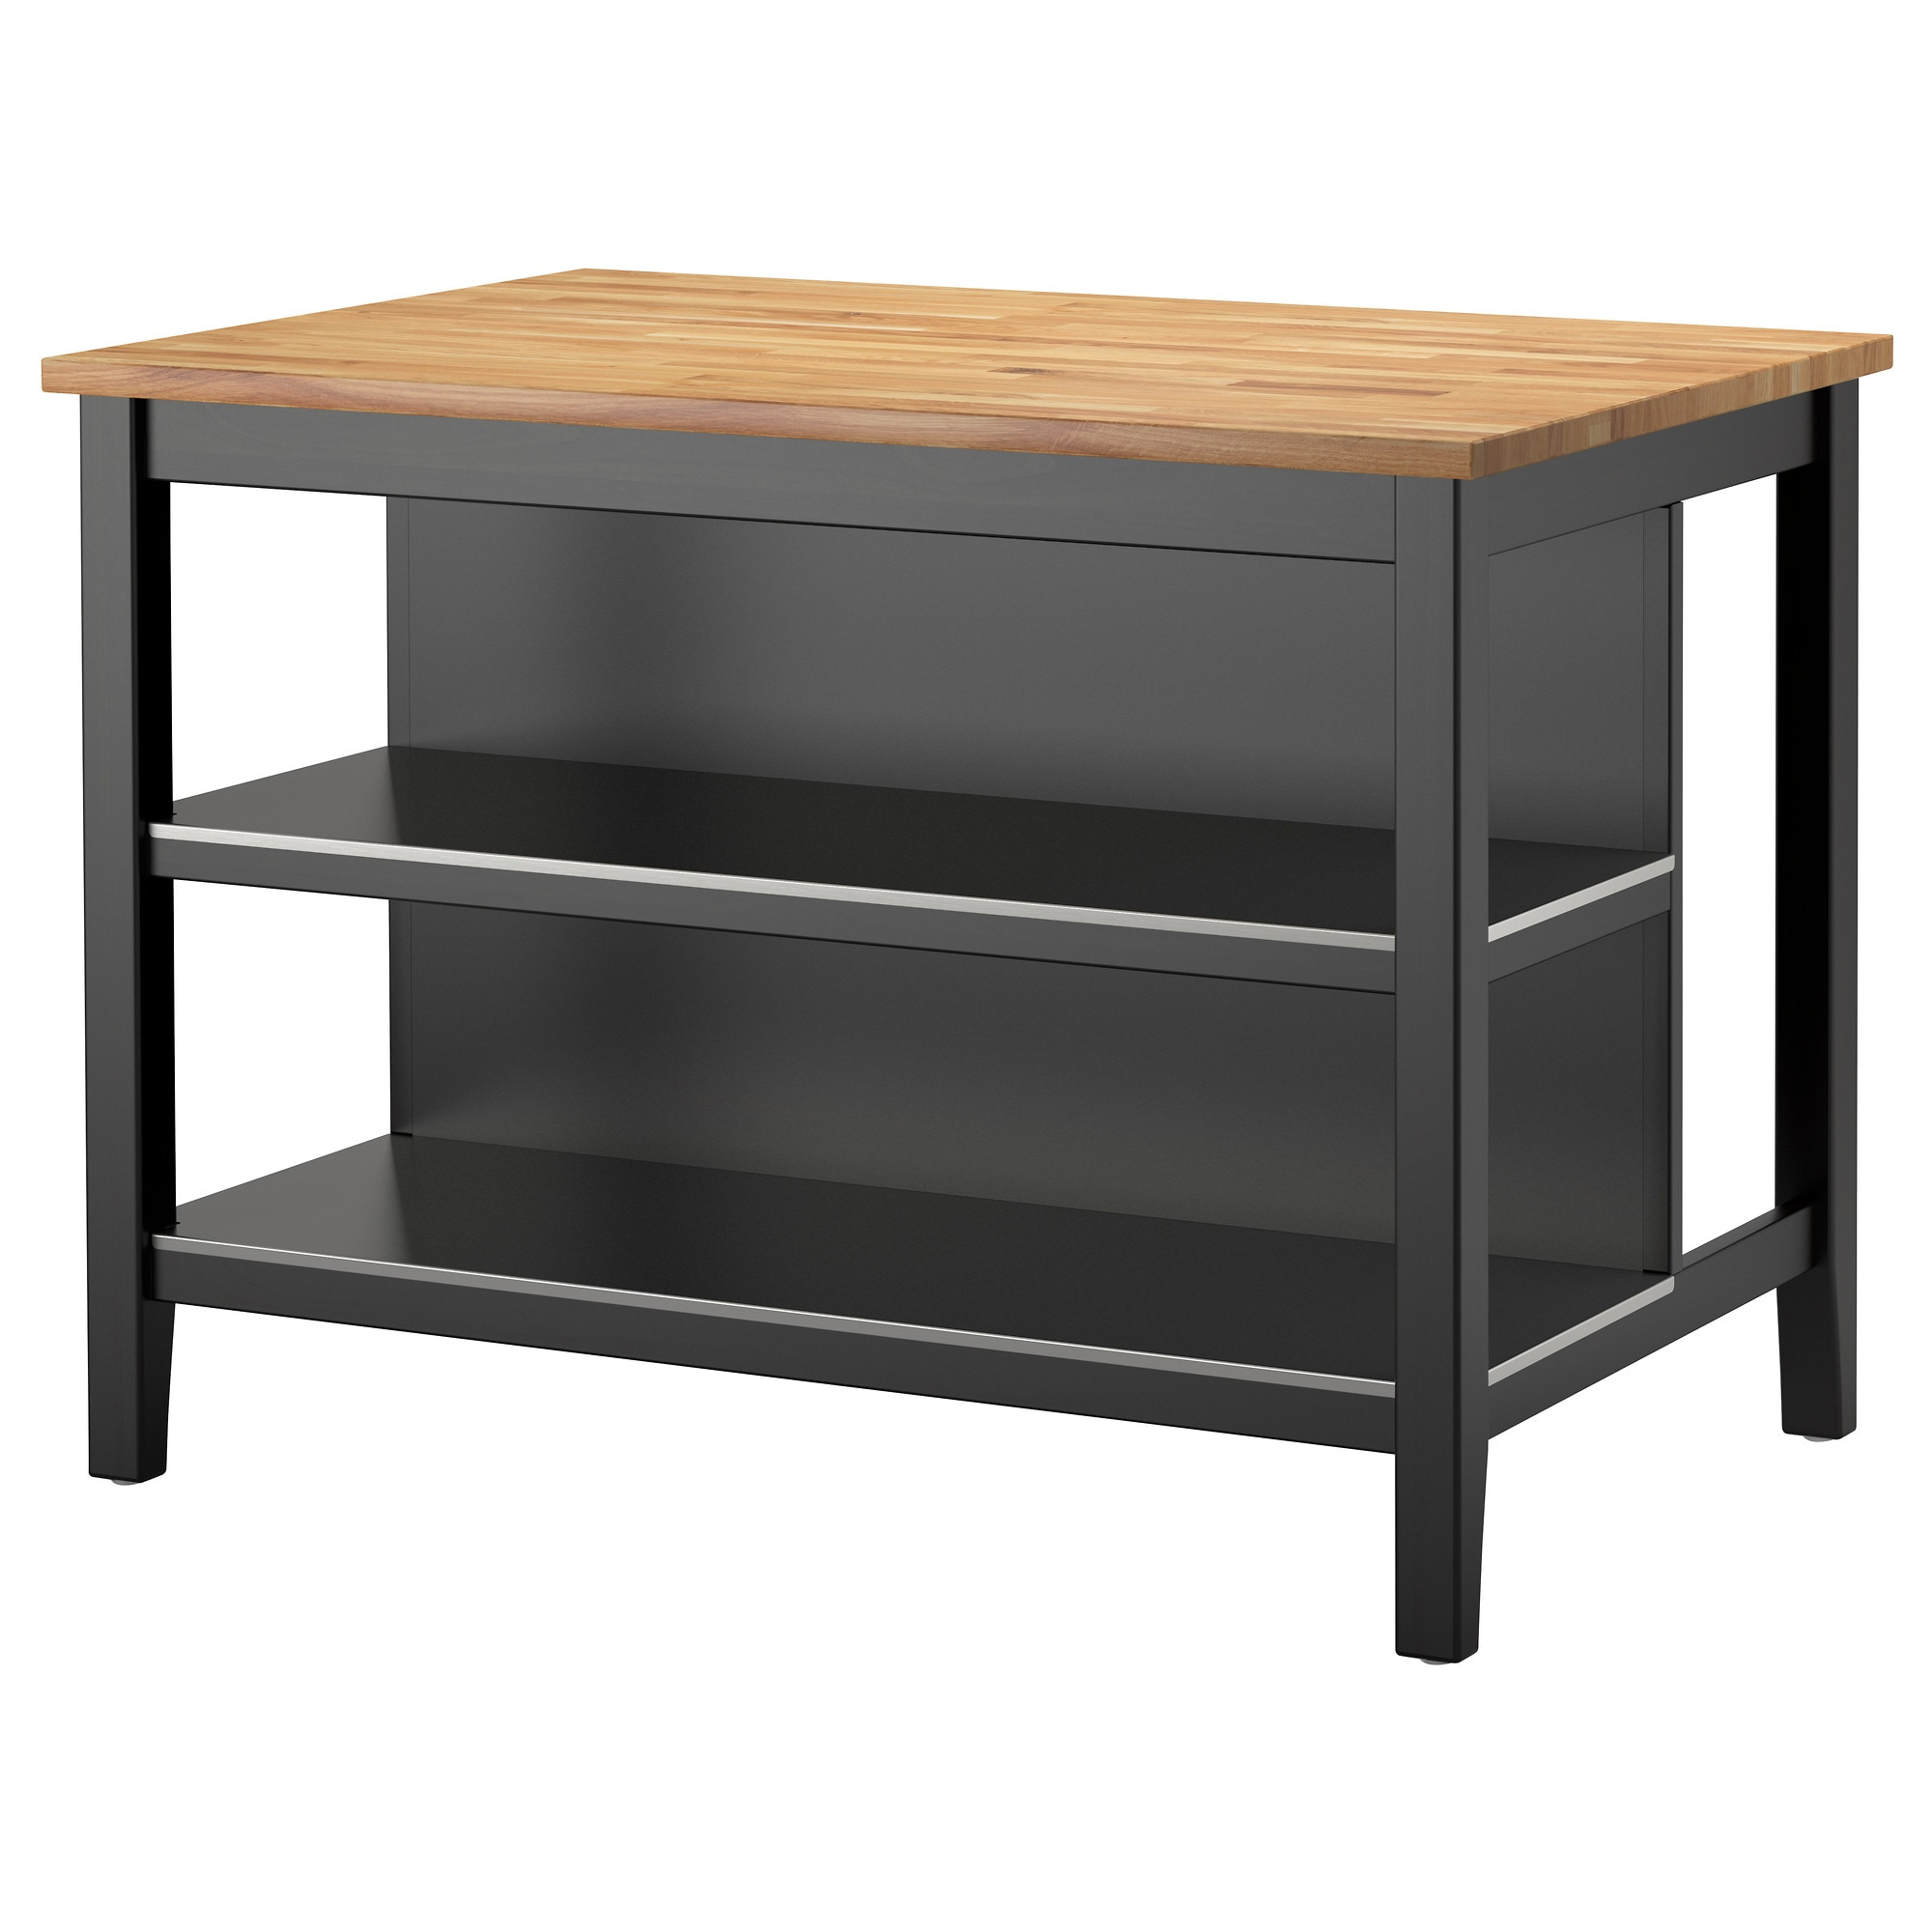 Stenstorp Kitchen Island Black Brown Oak Length 49 5 8